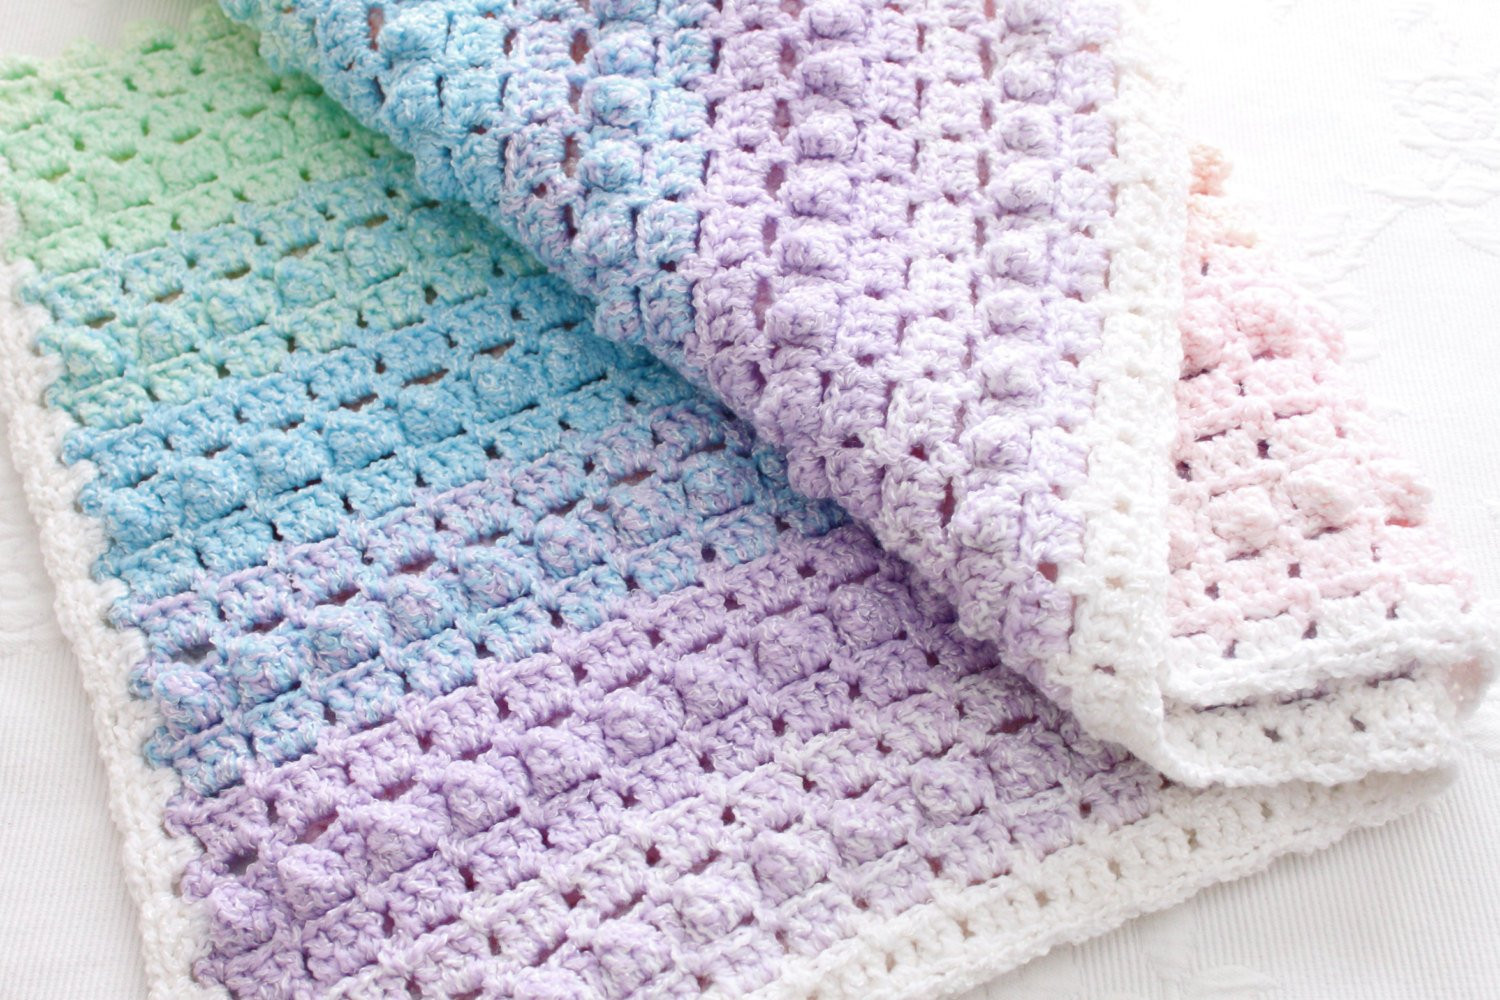 Elegant Crochet Pattern Rainbow Baby Blanket Pretty Popcorn Stitch Popcorn Stitch Crochet Patterns Of Best Of How to Crochet Lazy Popcorn Stitch No Removing Your Hook Popcorn Stitch Crochet Patterns